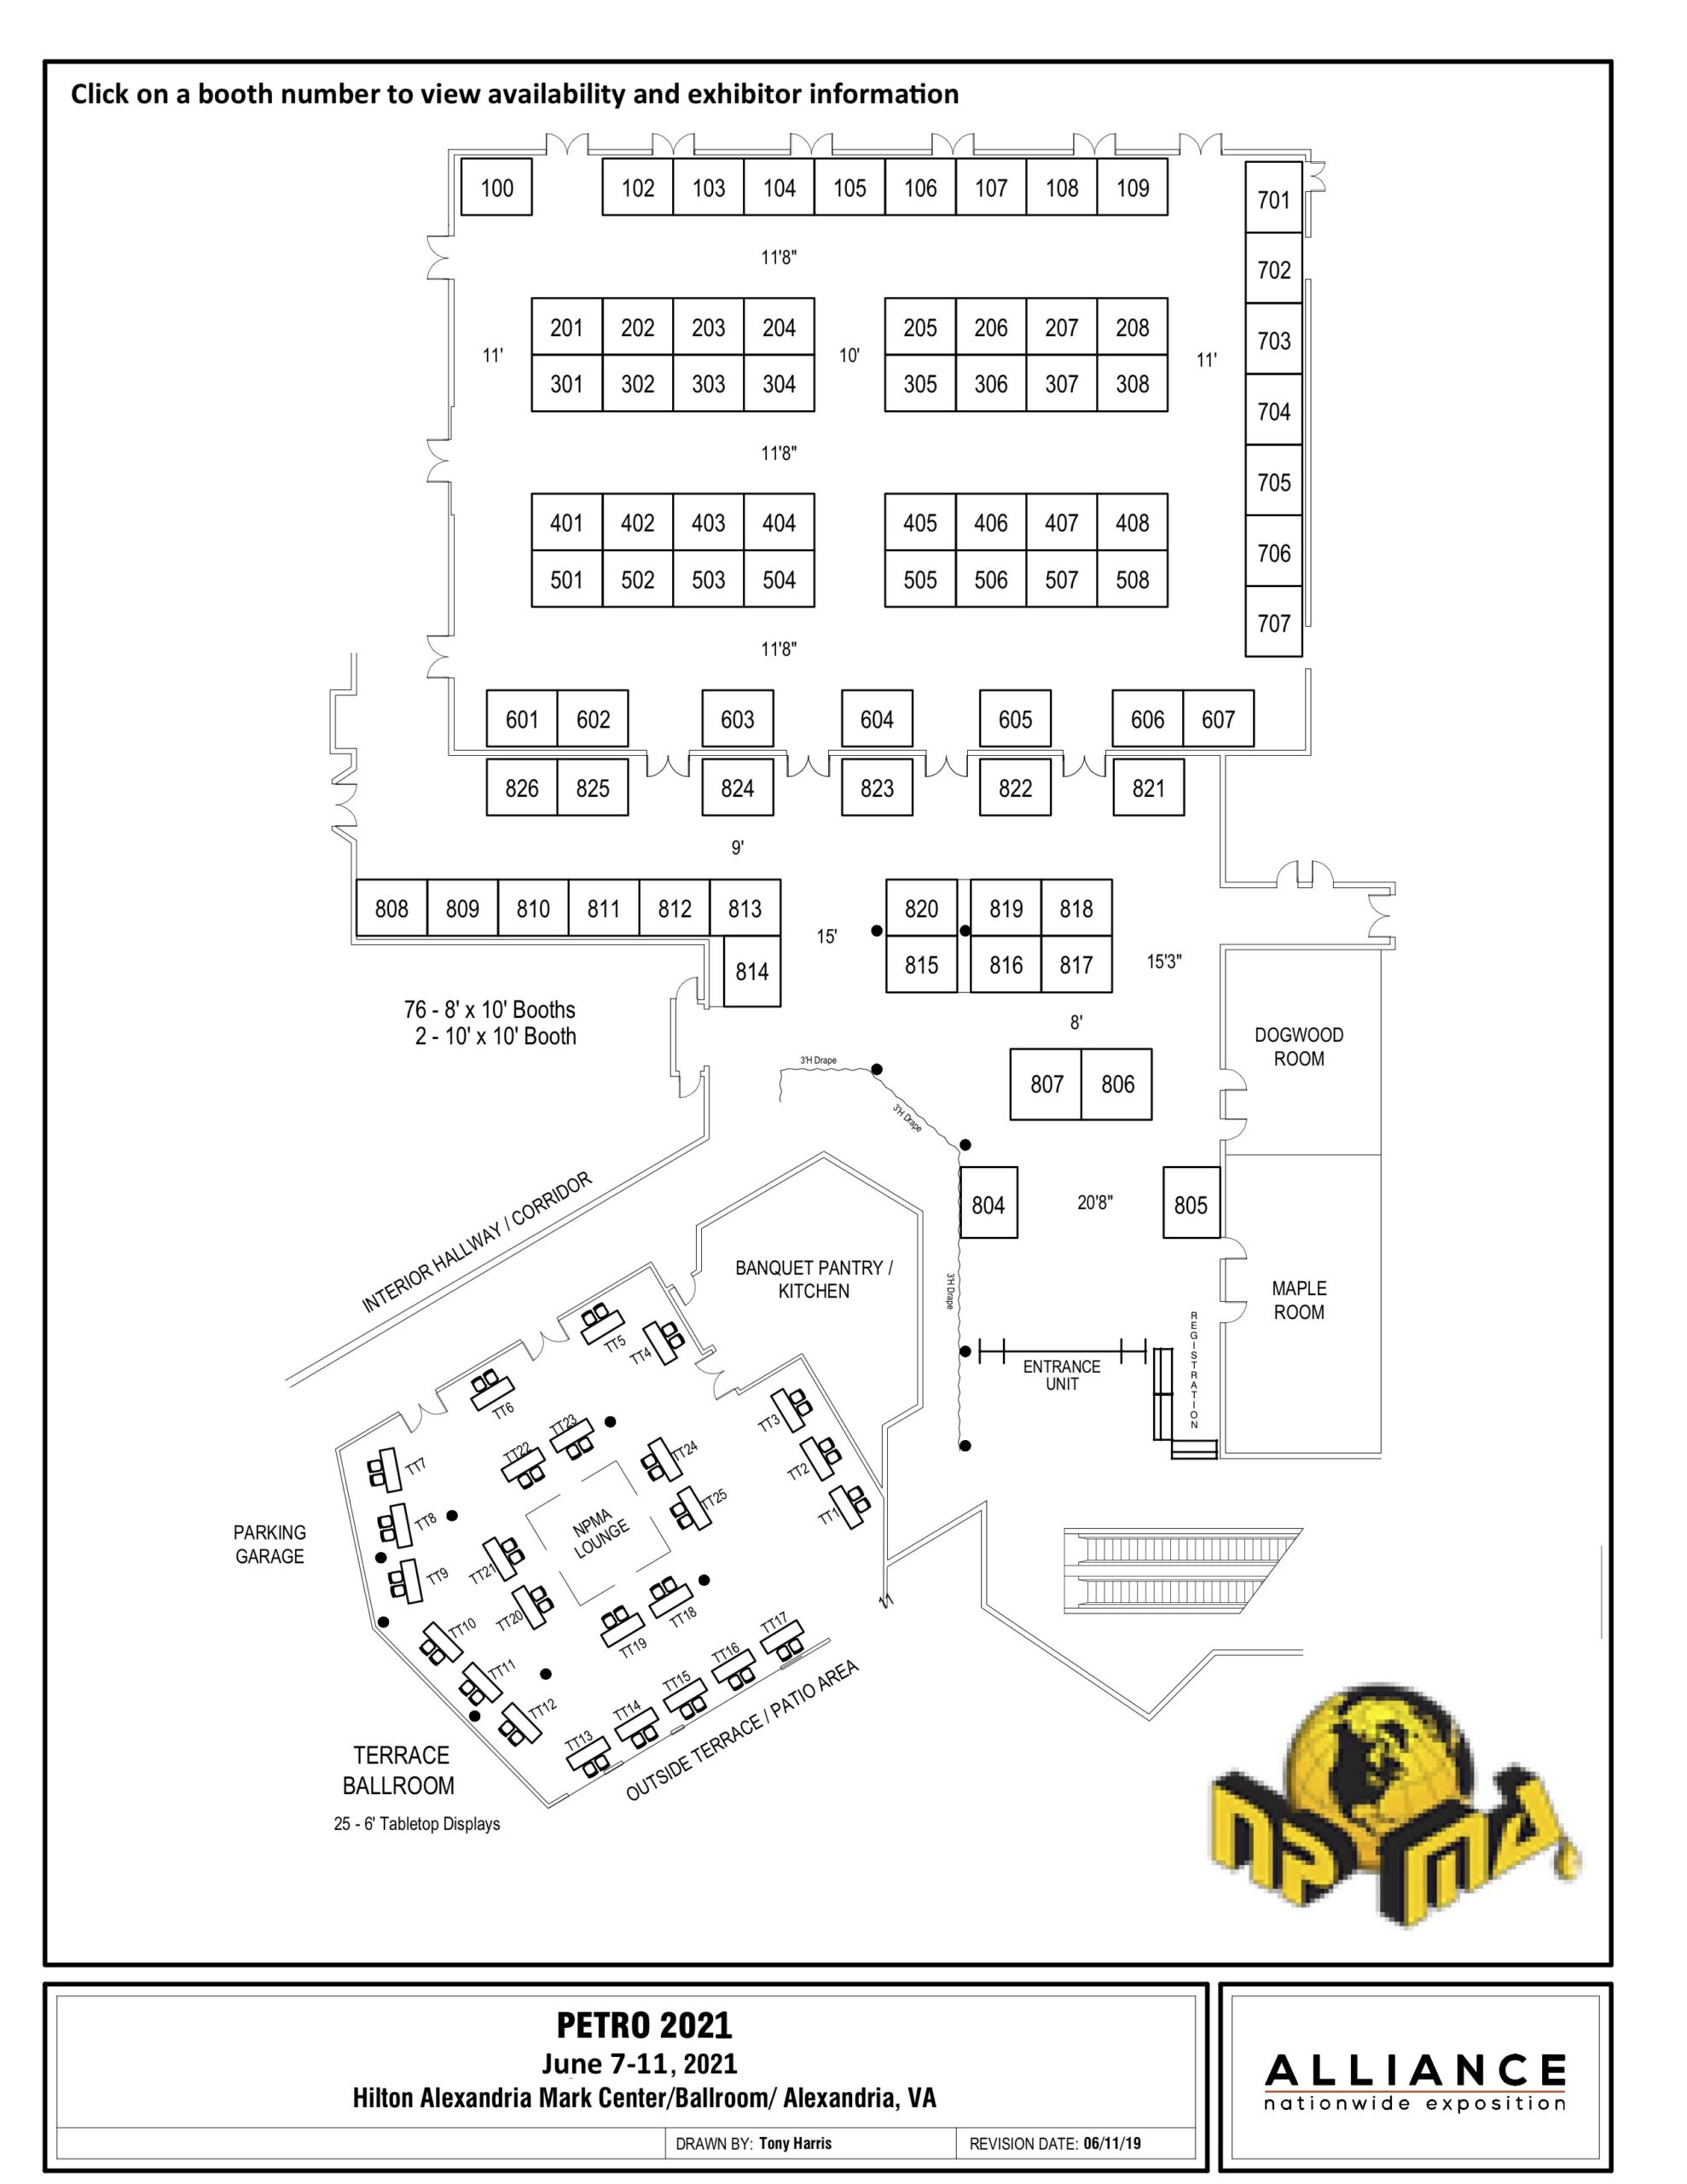 PETRO 2021 Exhibitor Booth Floor Plan